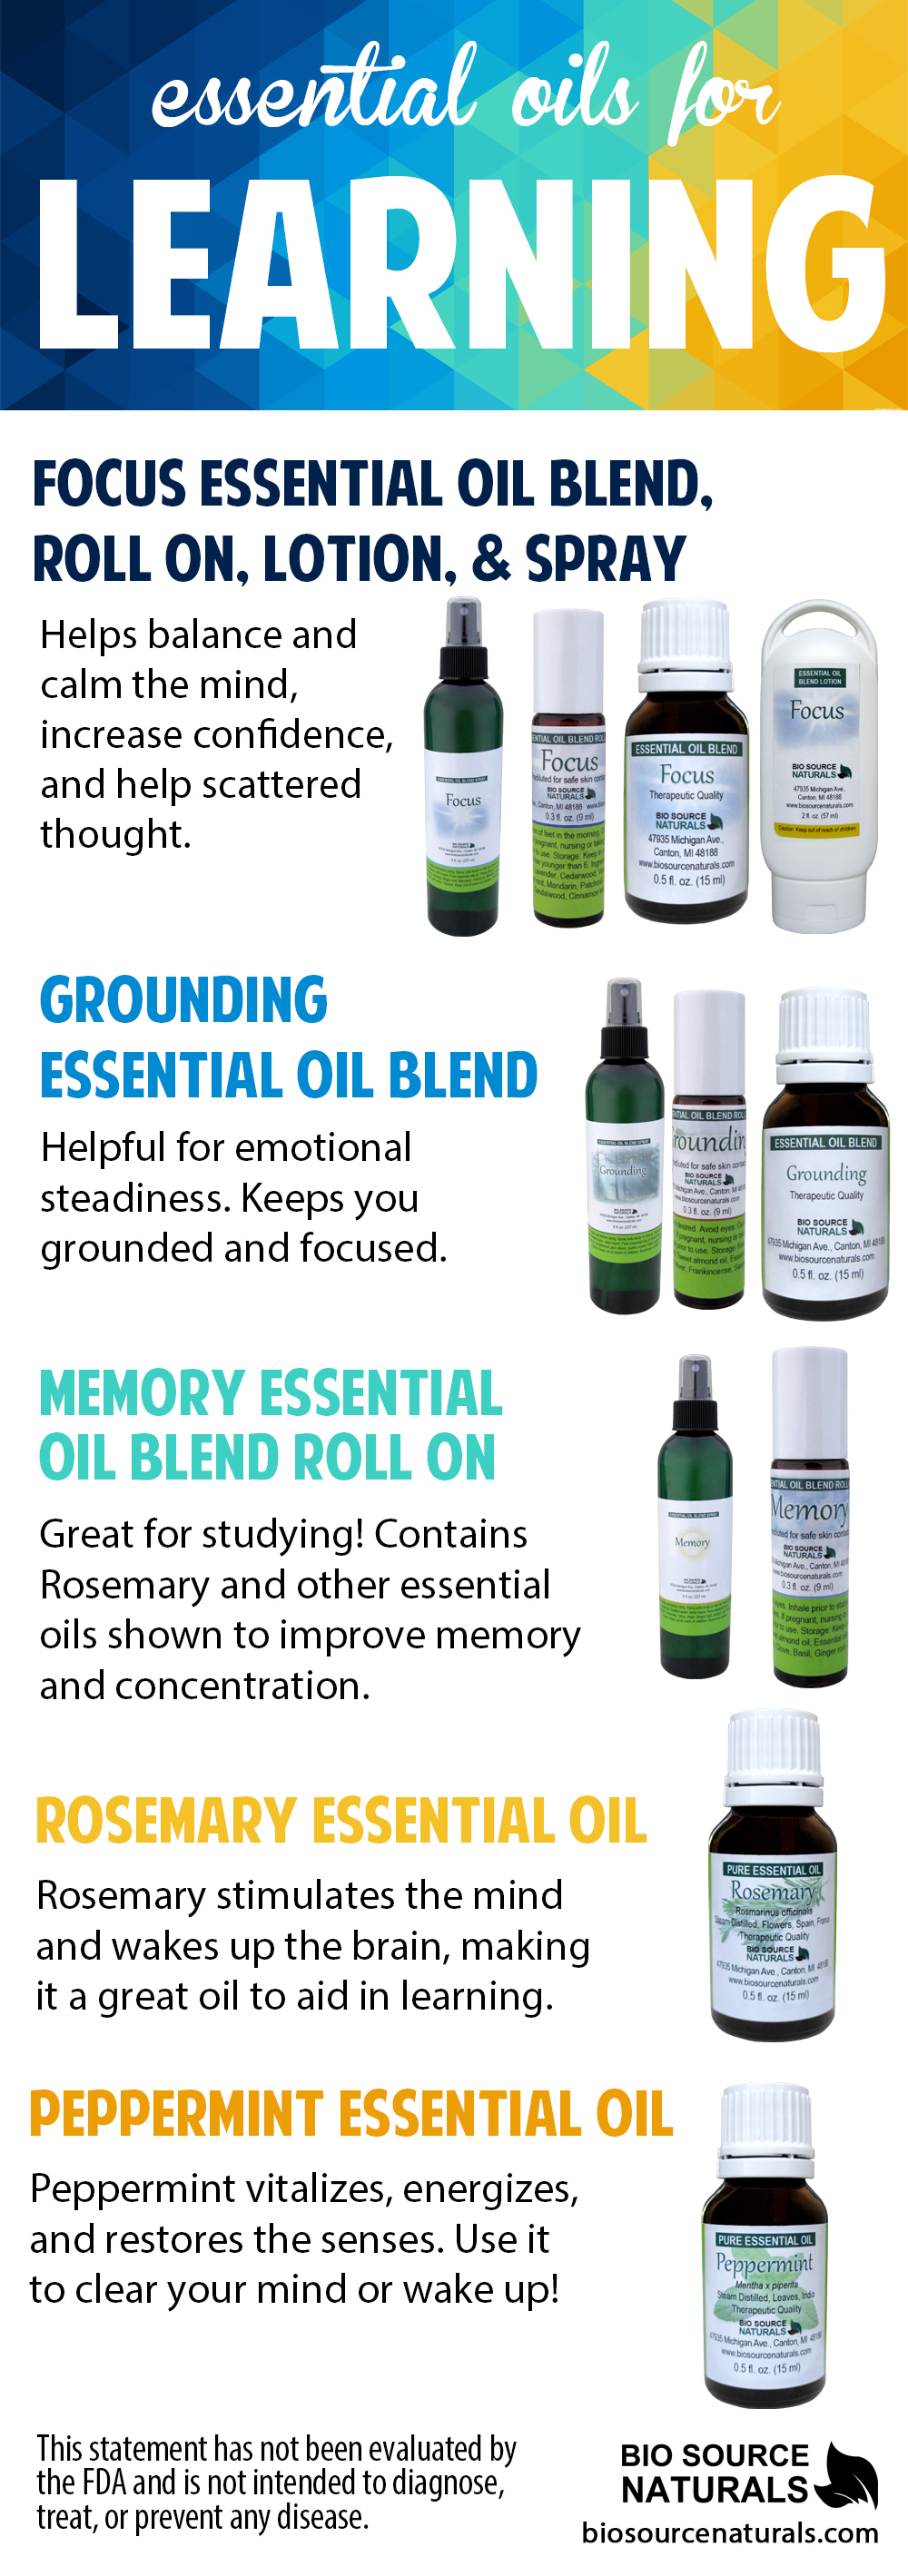 Memory Essential Oil Blend - 2.0 fl oz (60 ml)